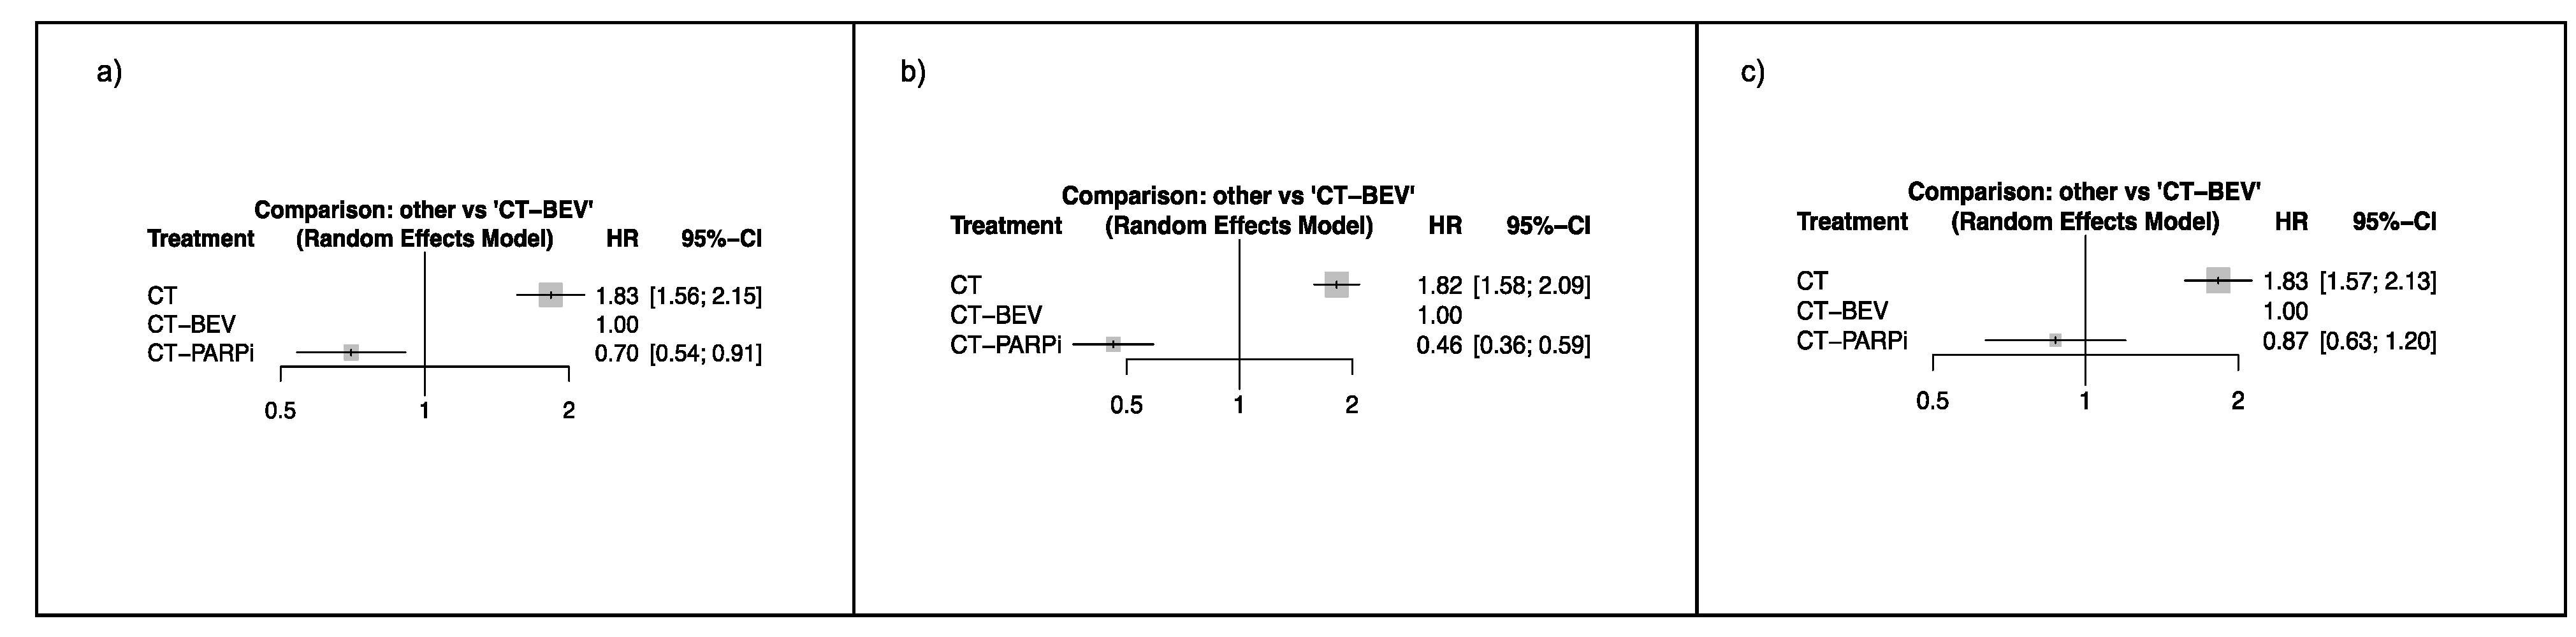 Ijms Free Full Text Bevacizumab Or Parp Inhibitors Maintenance Therapy For Platinum Sensitive Recurrent Ovarian Cancer A Network Meta Analysis Html